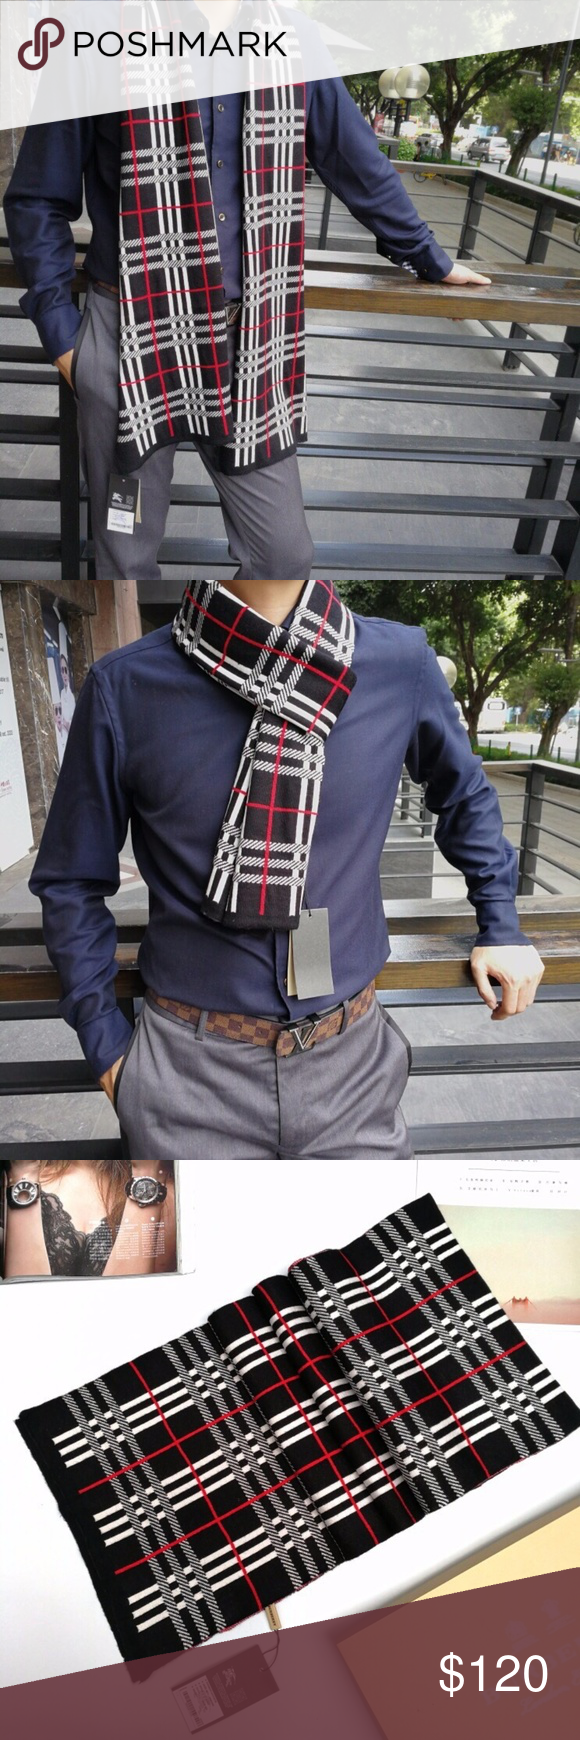 BURBERRY Scarf shawl Our products are 100 true Brand new